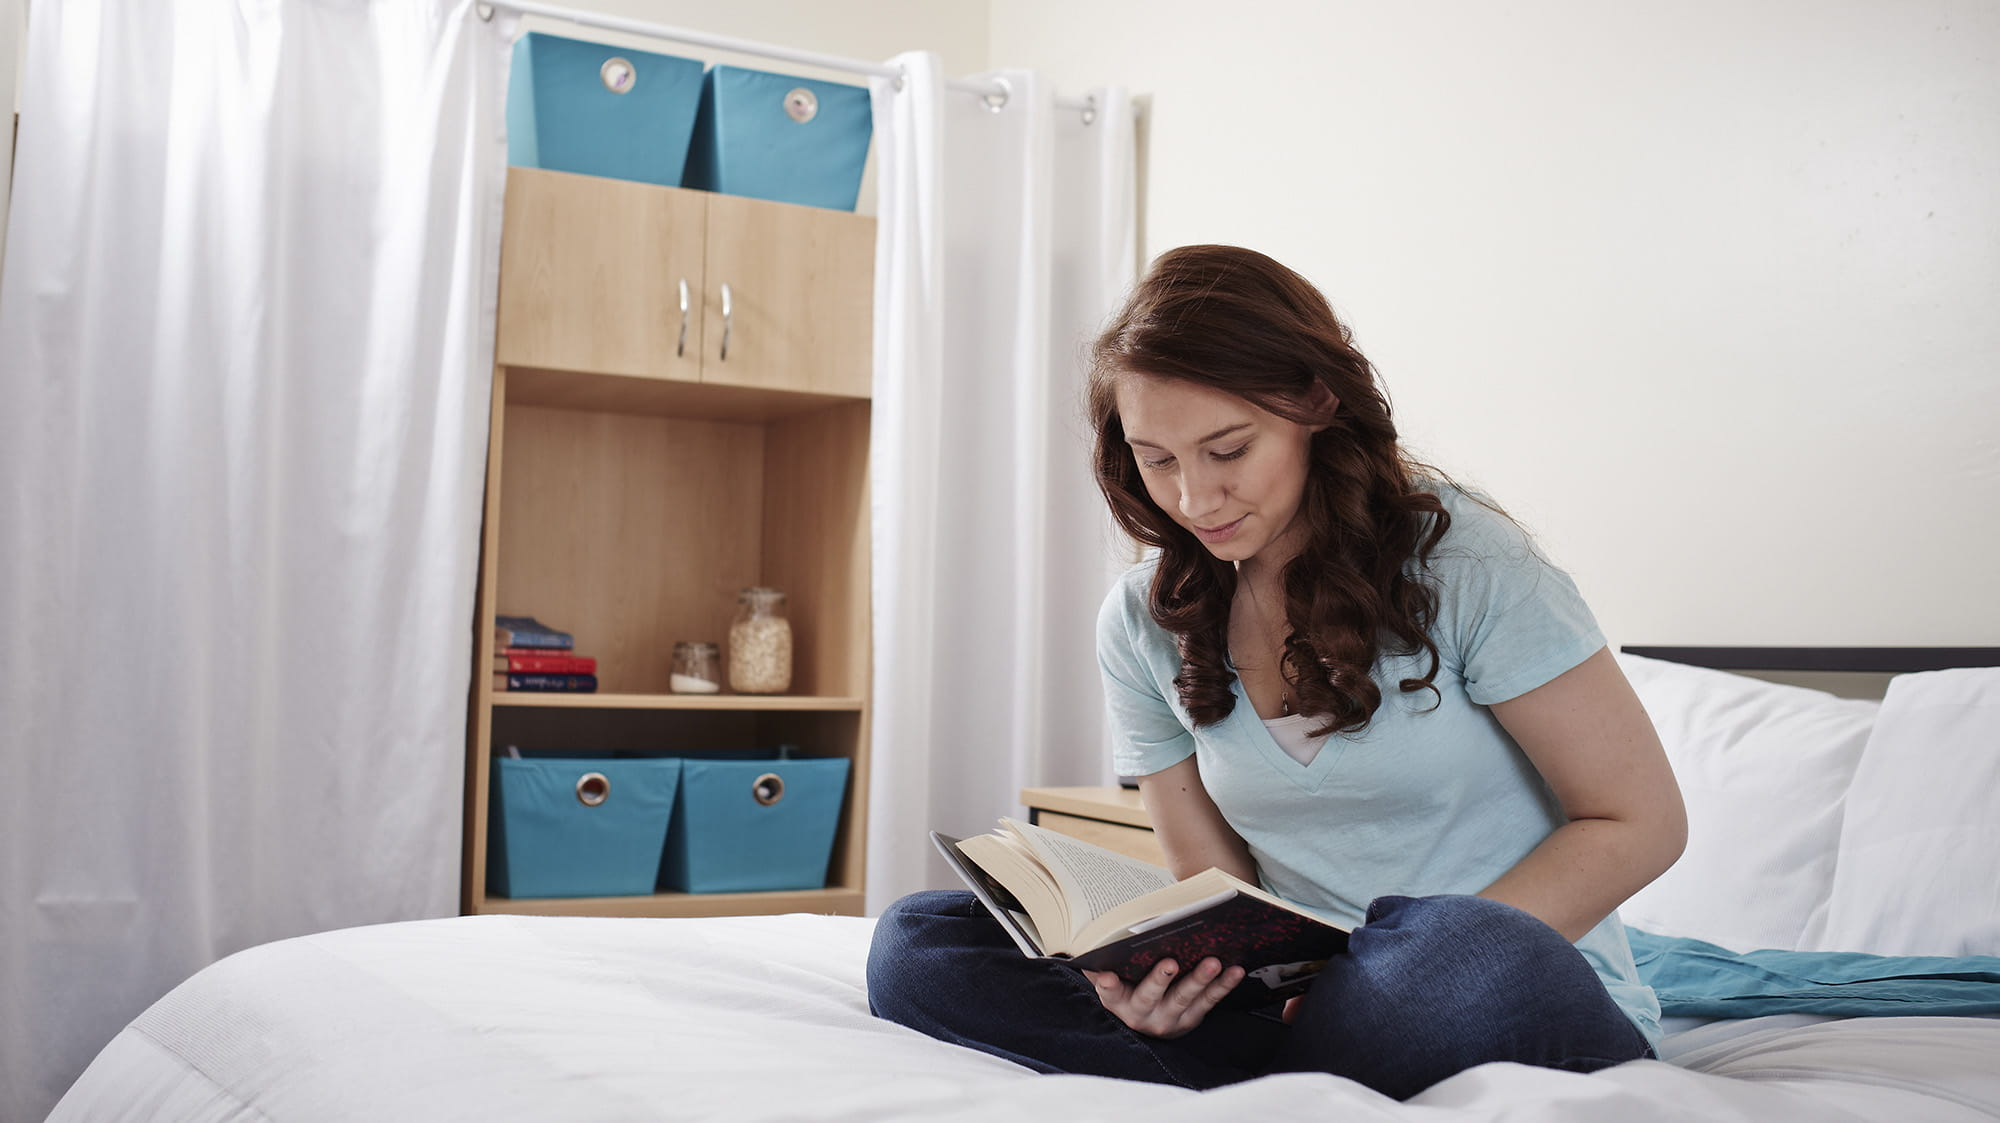 A girl reading a book on her bed in her residence room